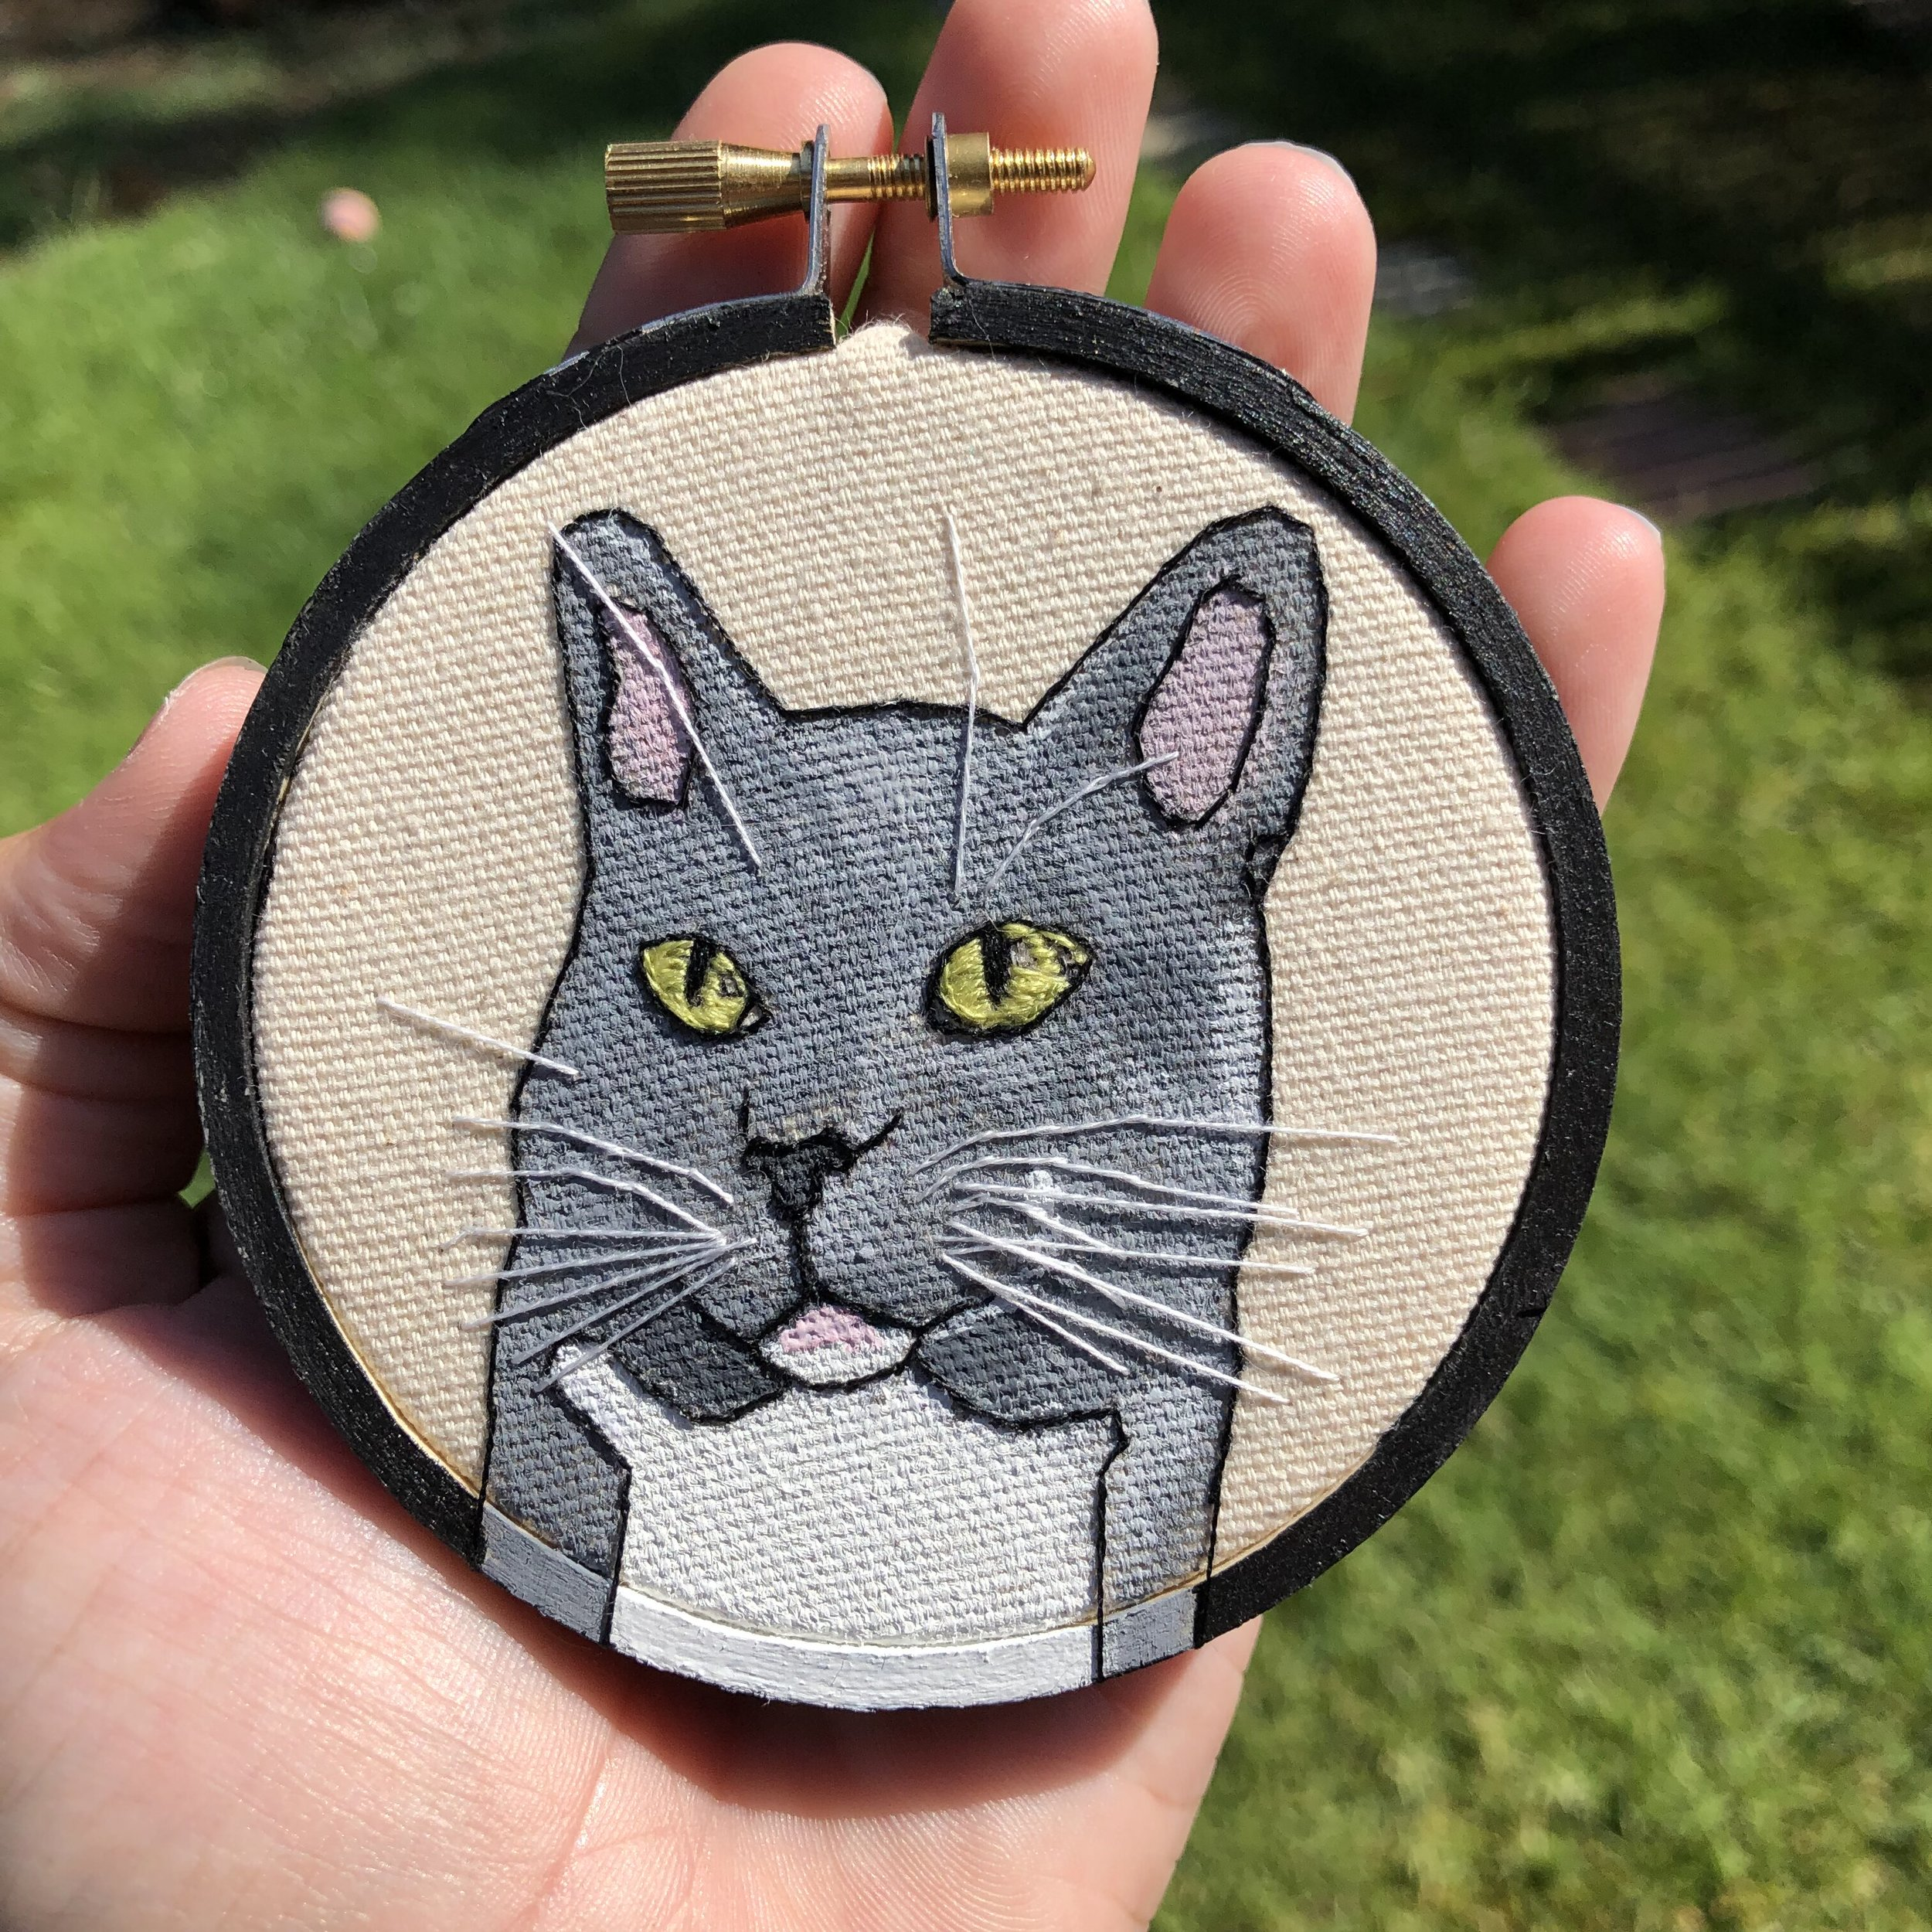 - Working with Taylor was a great experience! I picked what size hoop I wanted, specified the color, and sent some reference photos of our cat, Leonardo. She sent me updates as she worked on the portrait and before I knew it, the completed piece was in my hands! Such a simple process and quick delivery. I am pleased. And Leonardo is too! Thank you!